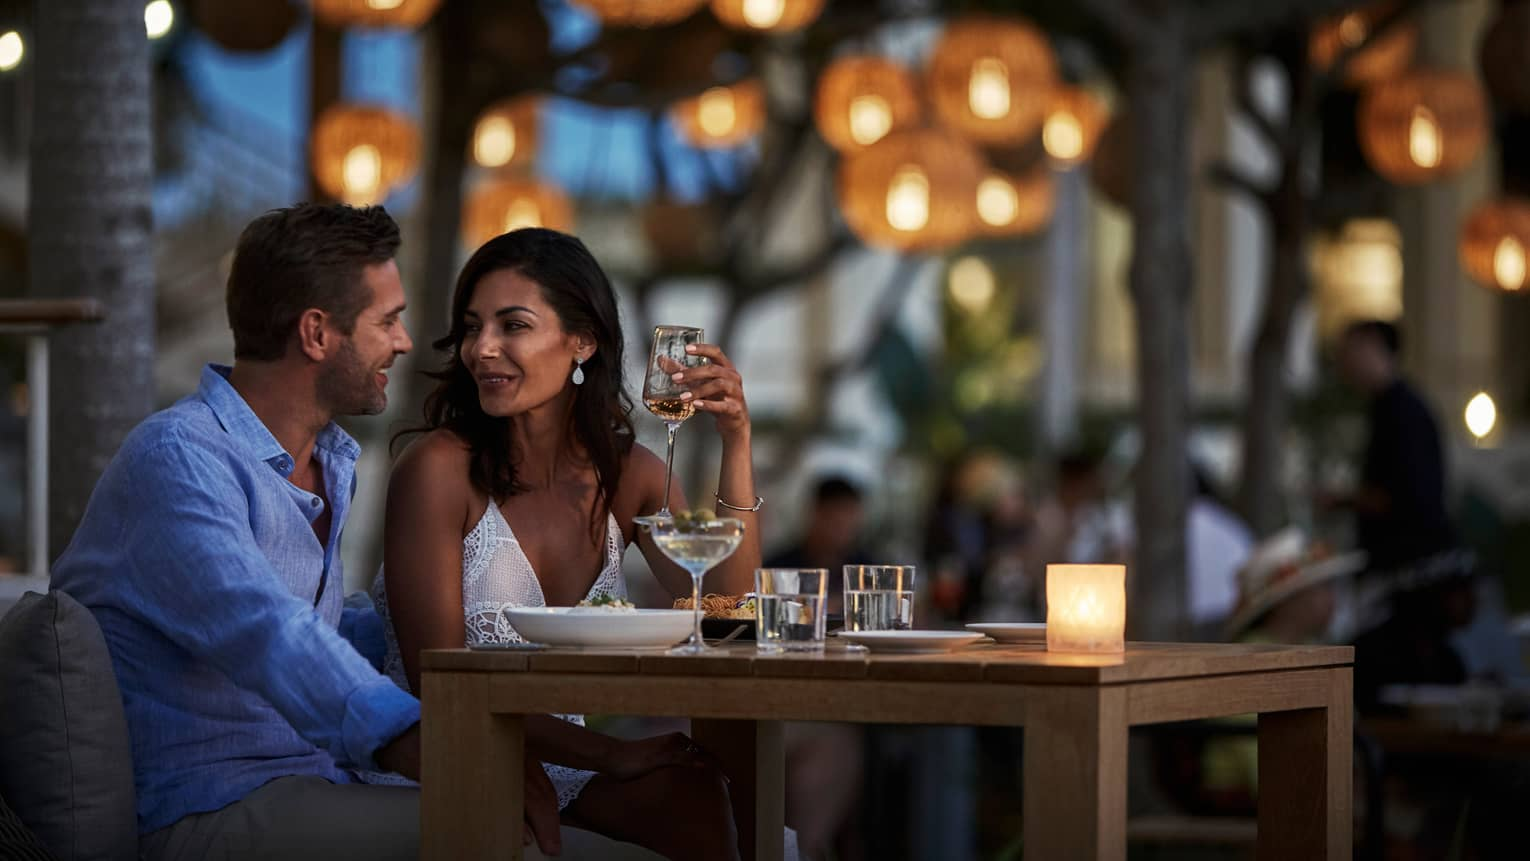 Man and woman with wine glass sit close at Noe patio dining table, lanterns